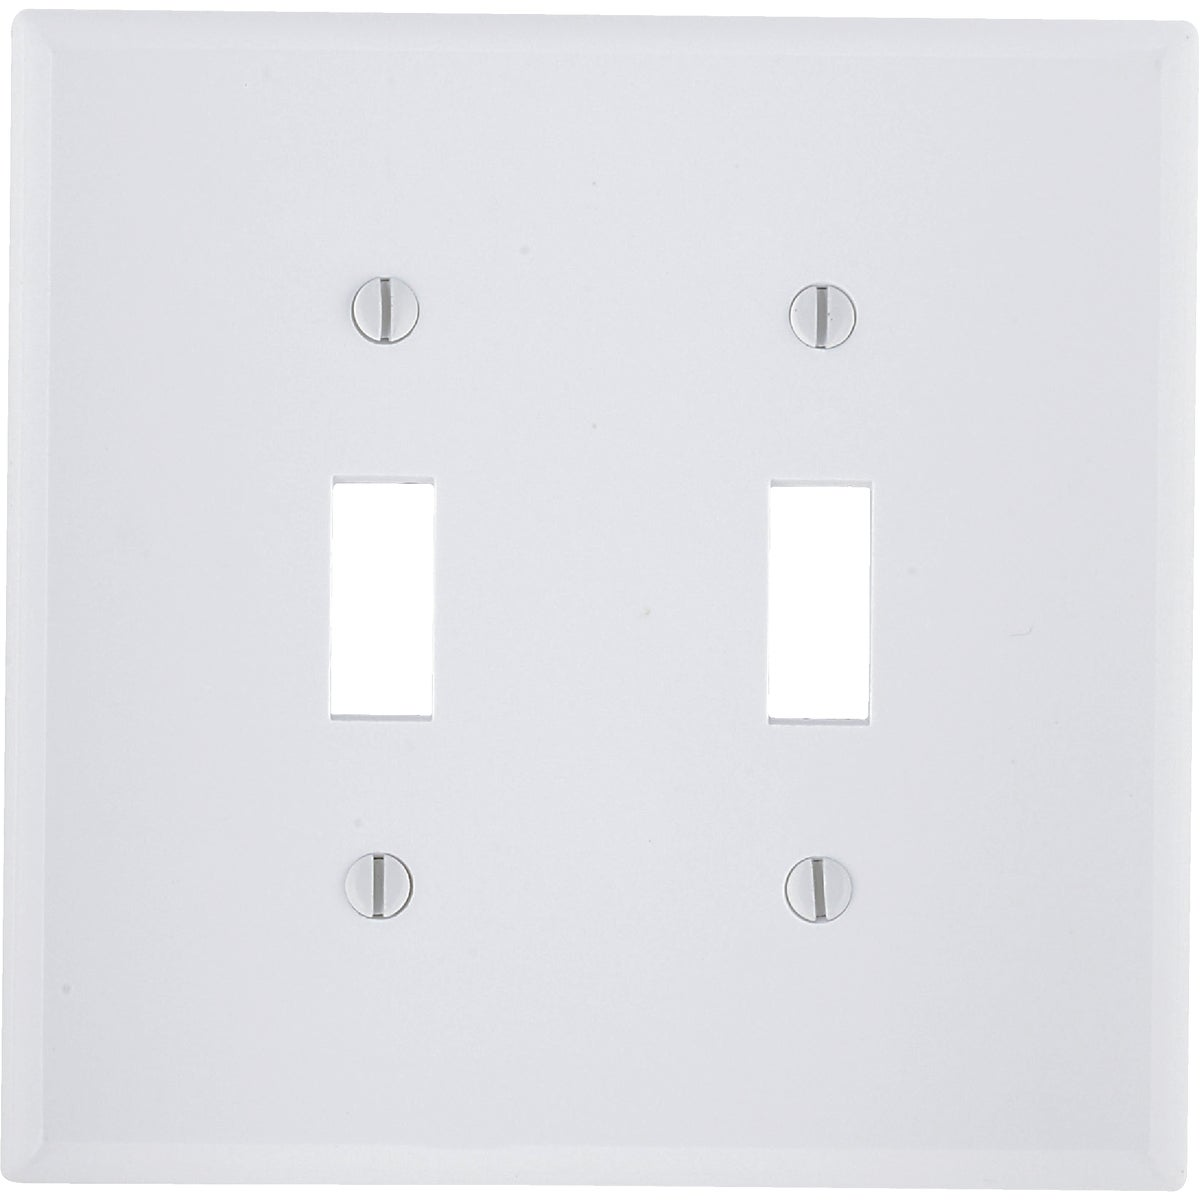 WHT 2-TOGL WALL PLATE - 80509W by Leviton Mfg Co